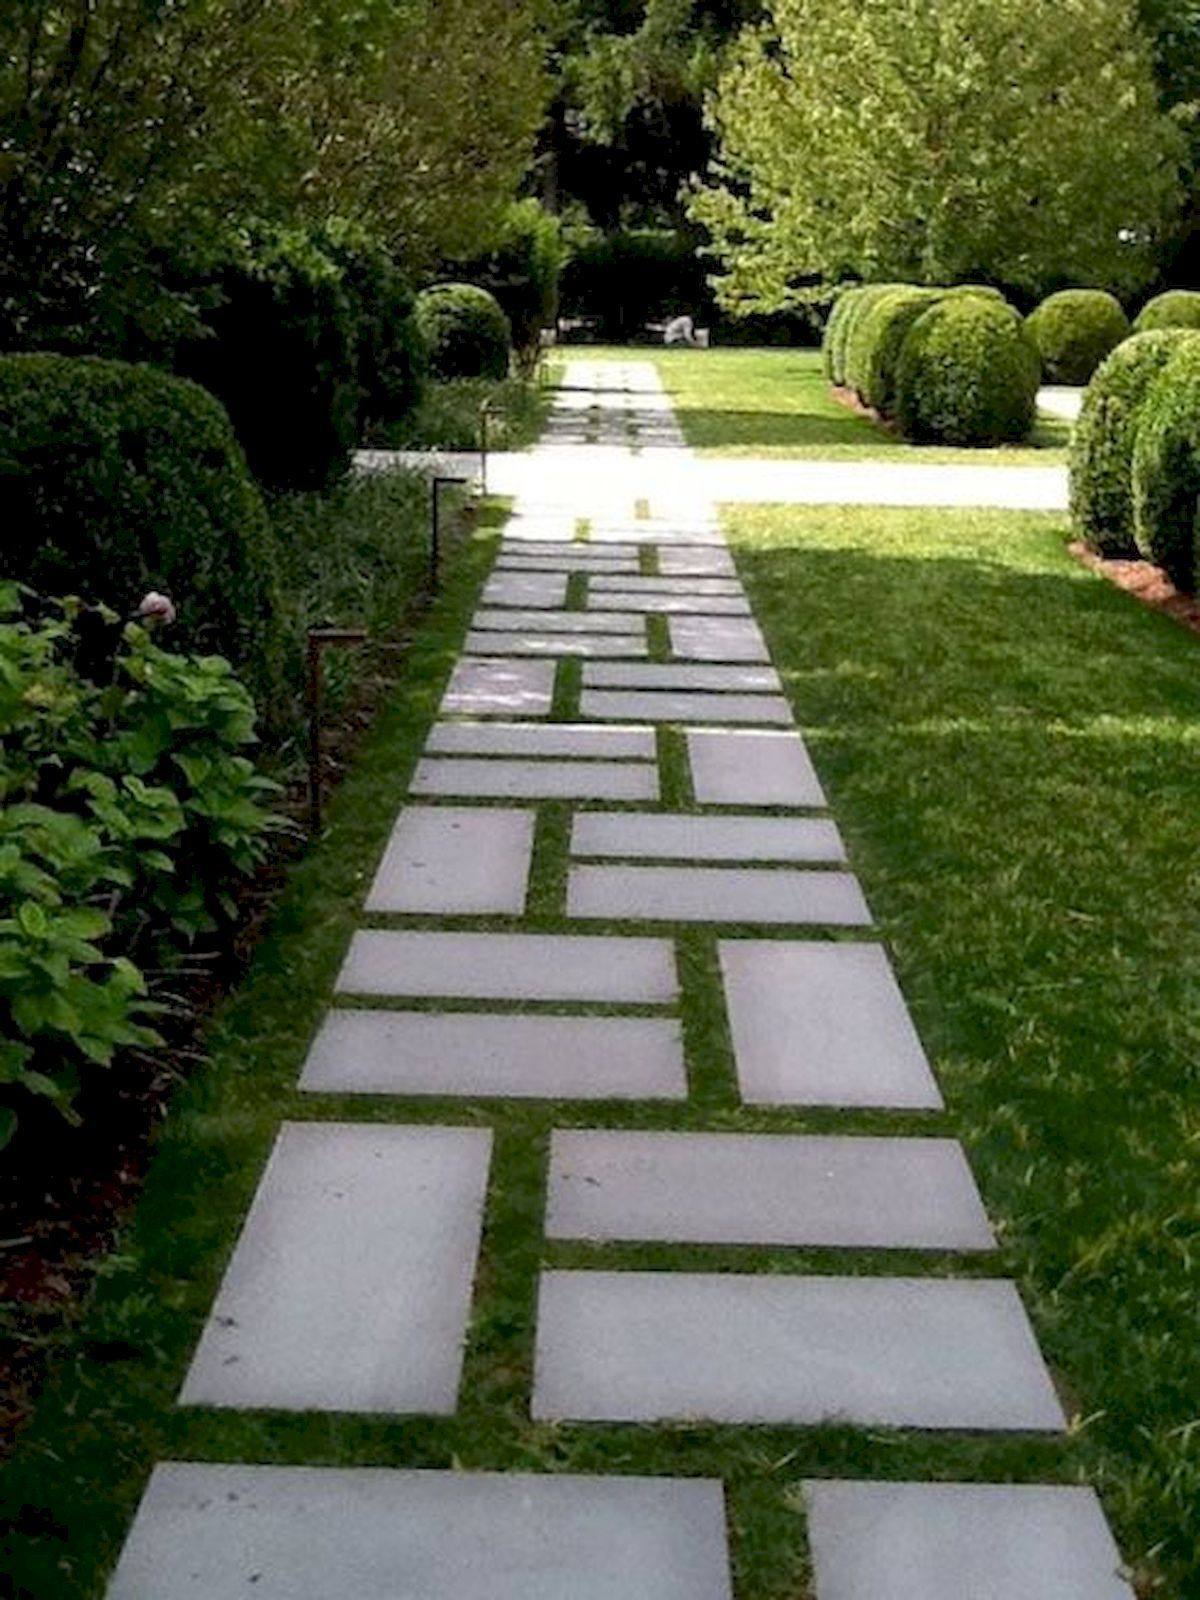 Landscaping Ideas For Walkways And Paths